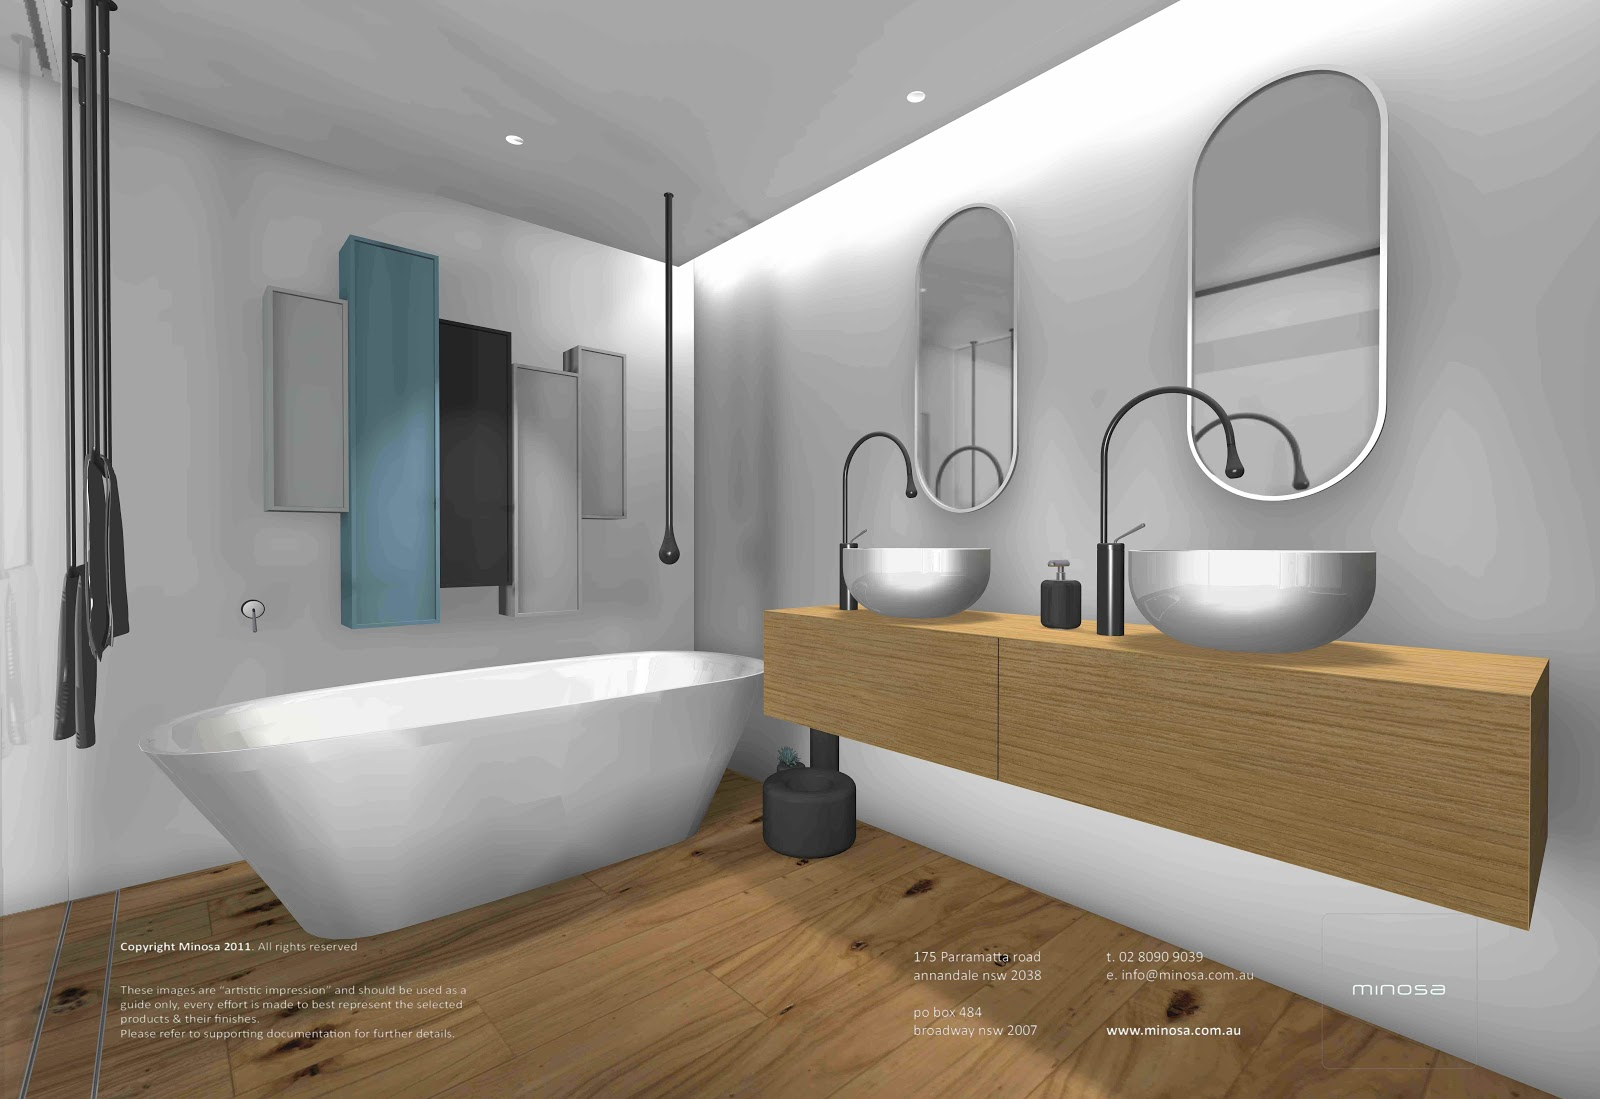 Minosa sydney city apartment modern bathroom design for Bathroom remodelling sydney